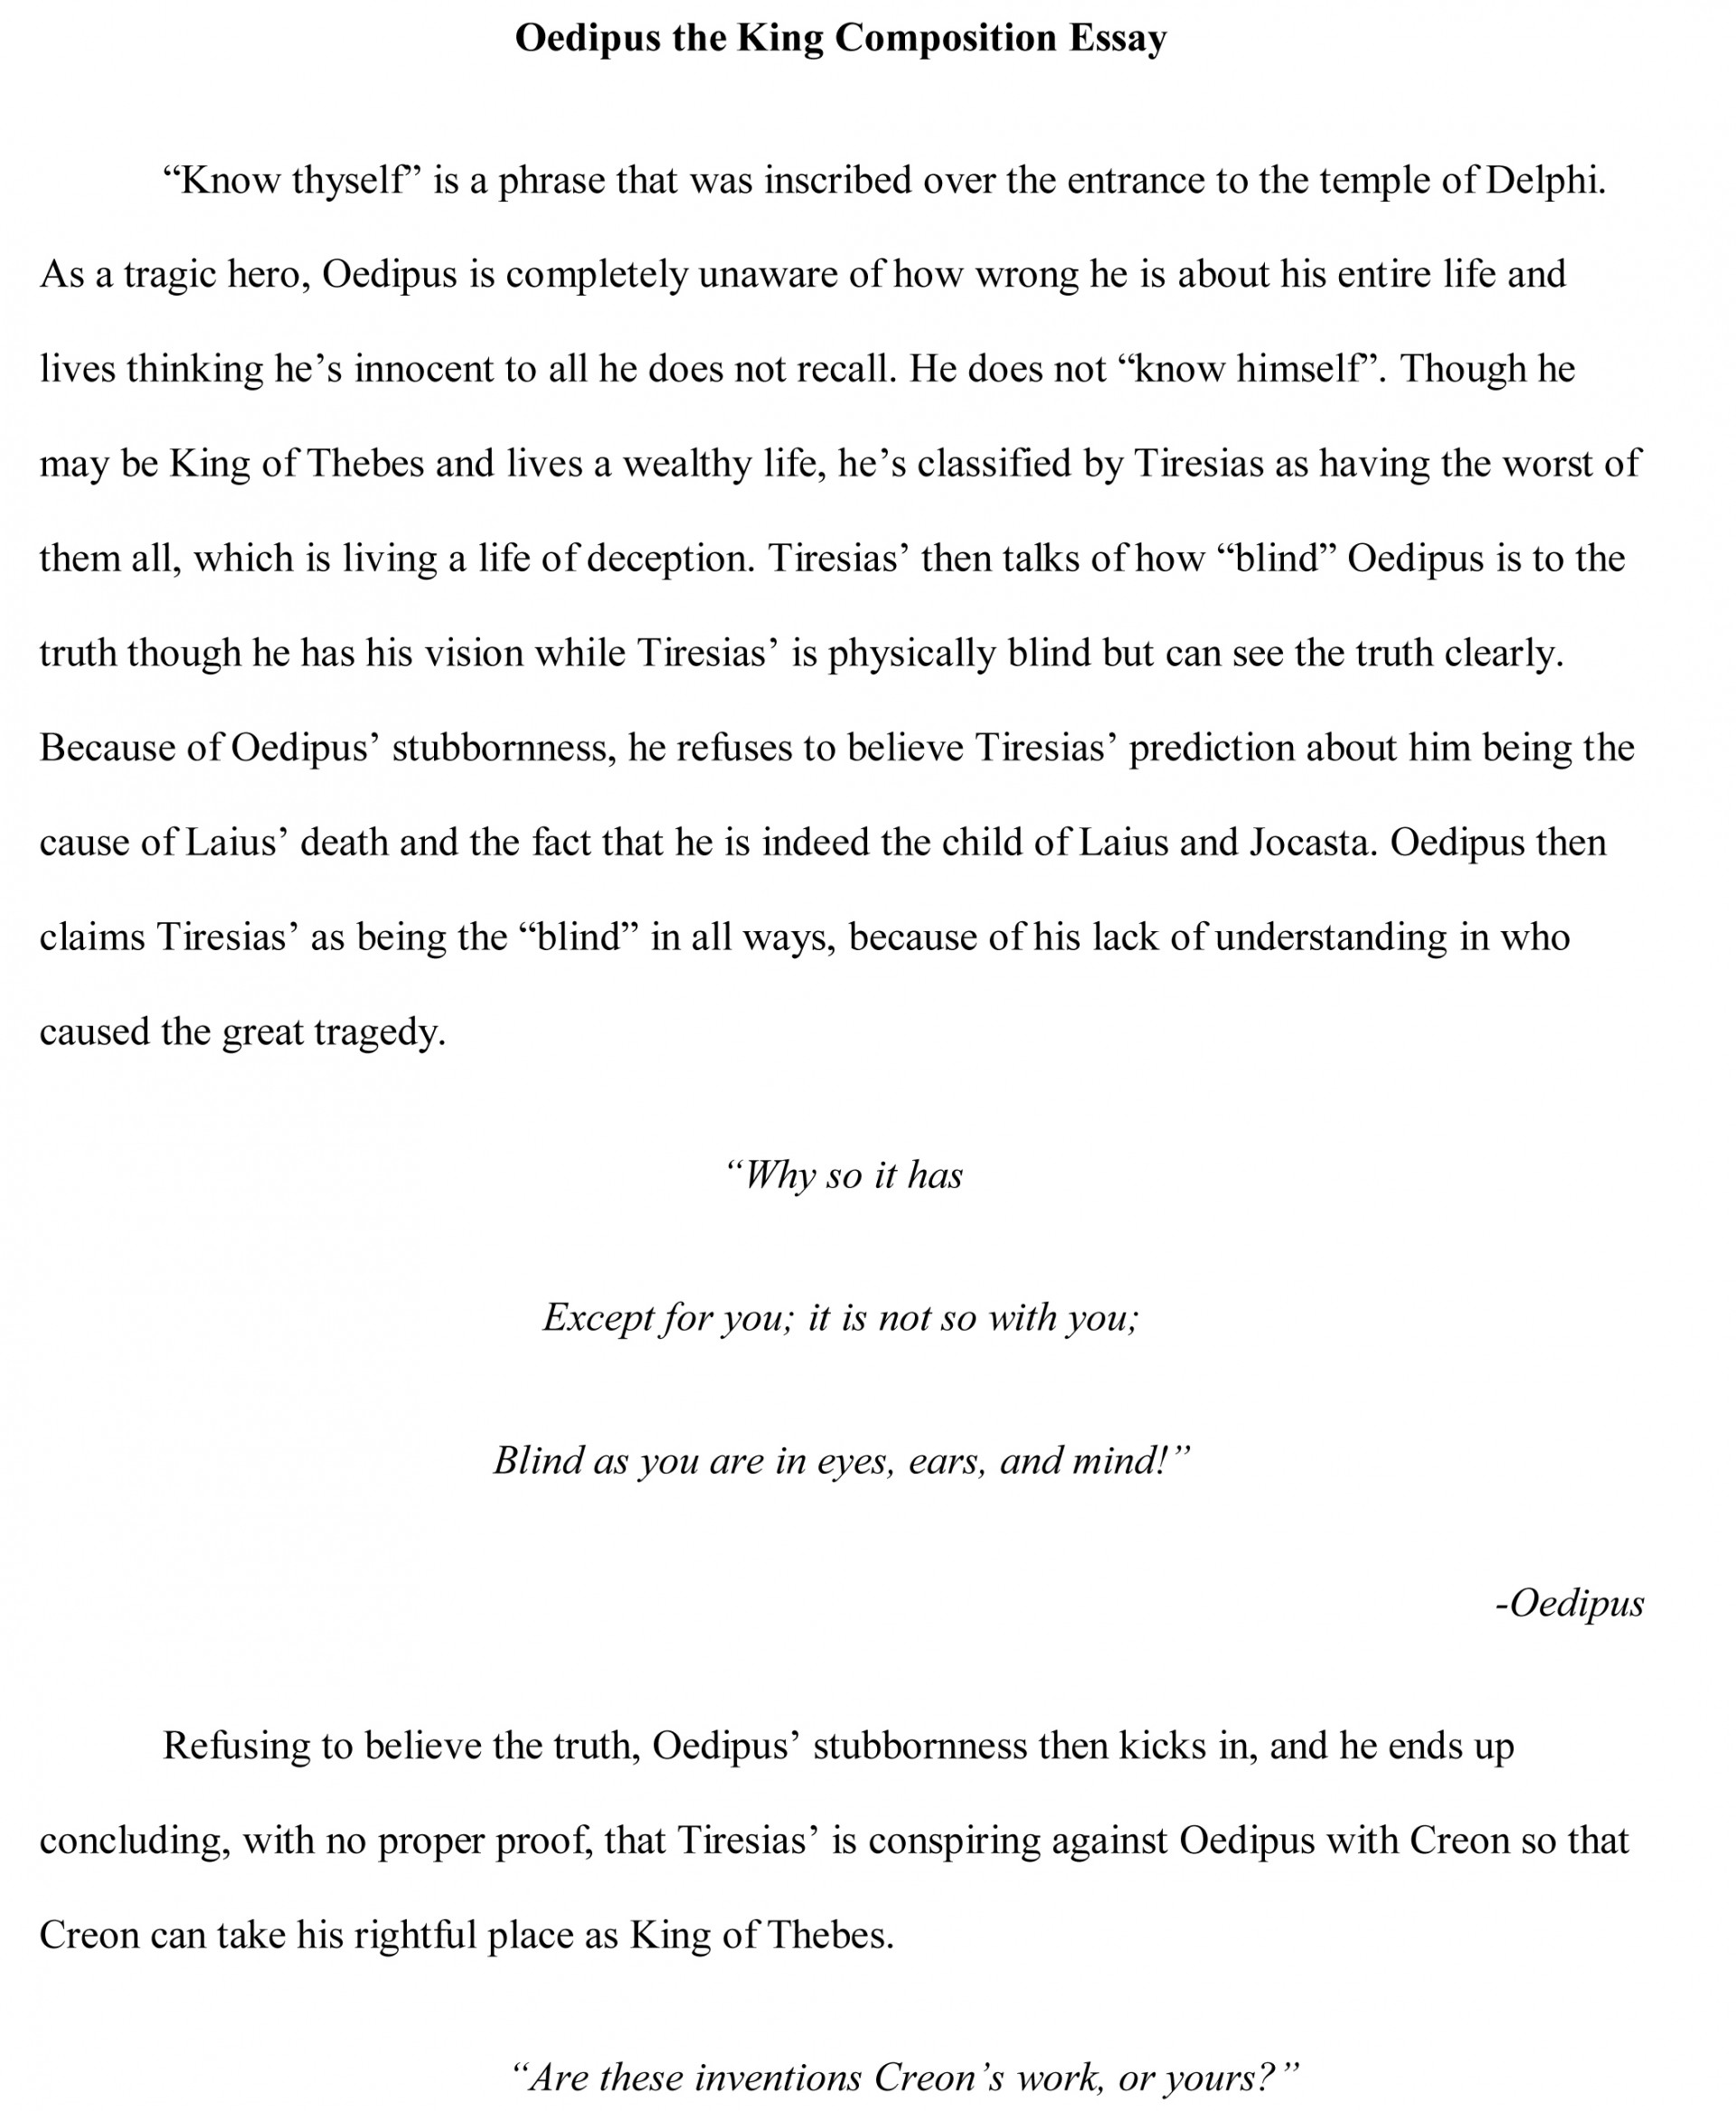 002 Best Essay Topics Example Oedipus Free Surprising Research Paper For College Student High School Argumentative 1920